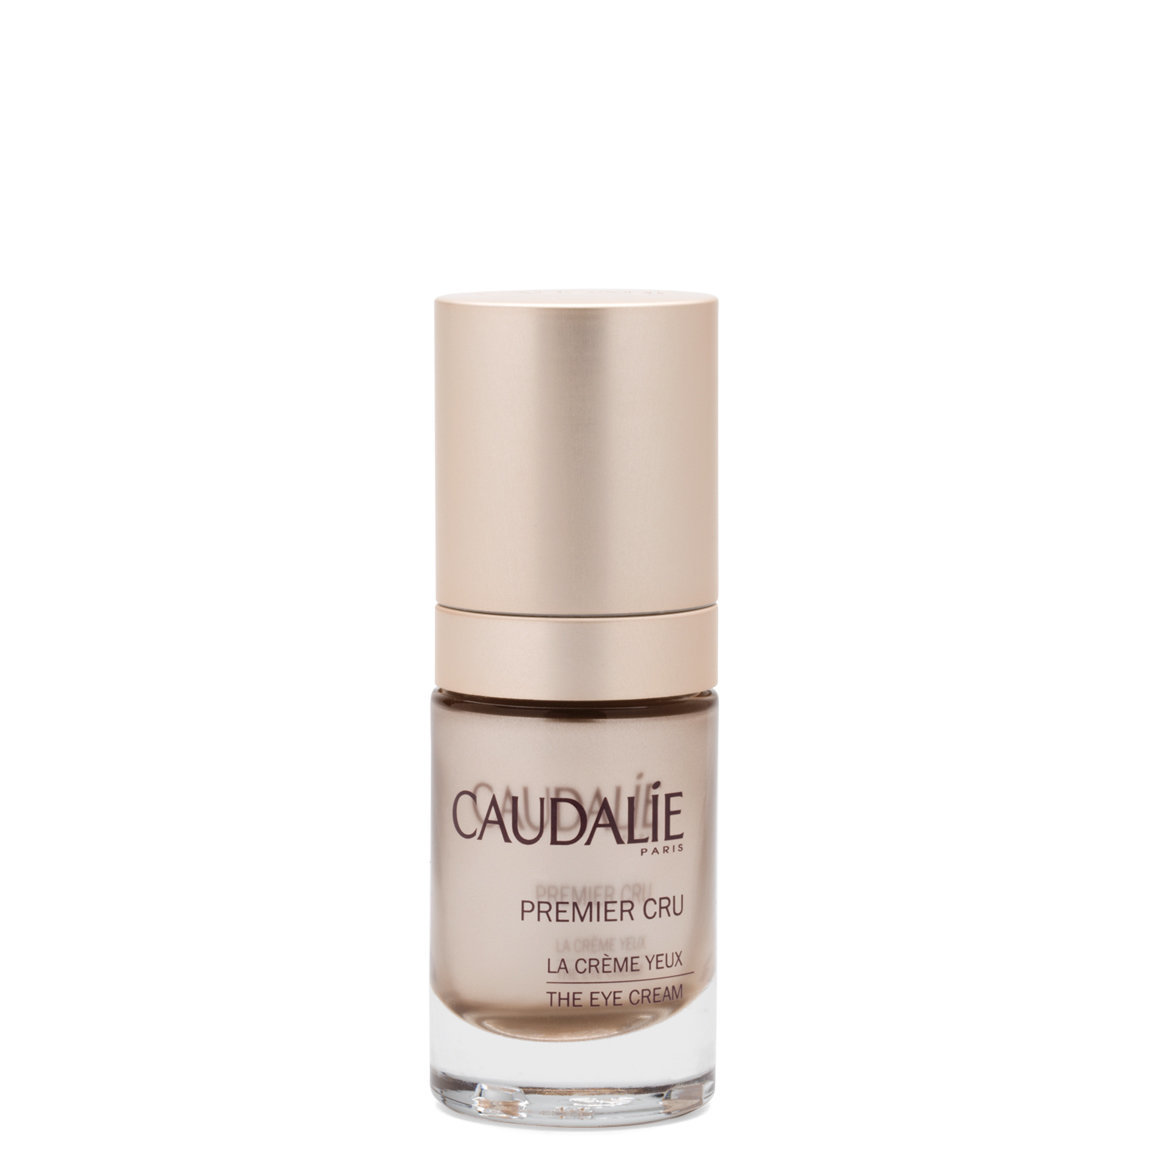 Caudalie Premier Cru The Eye Cream product smear.